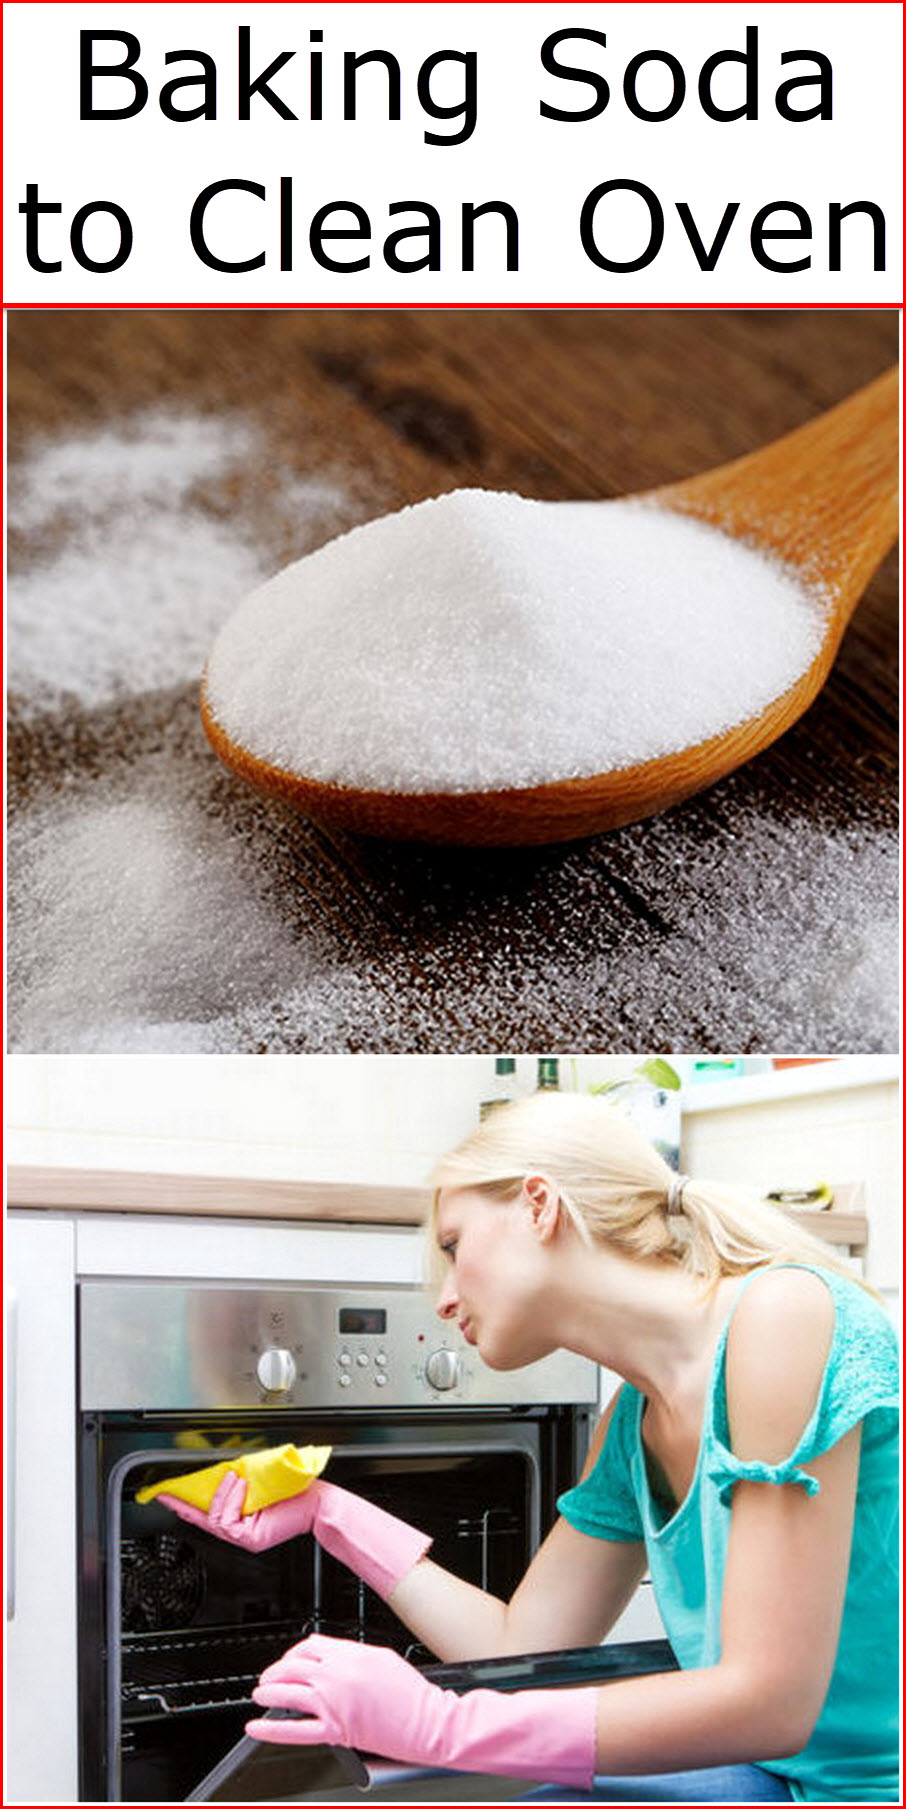 Baking Soda to Clean Oven